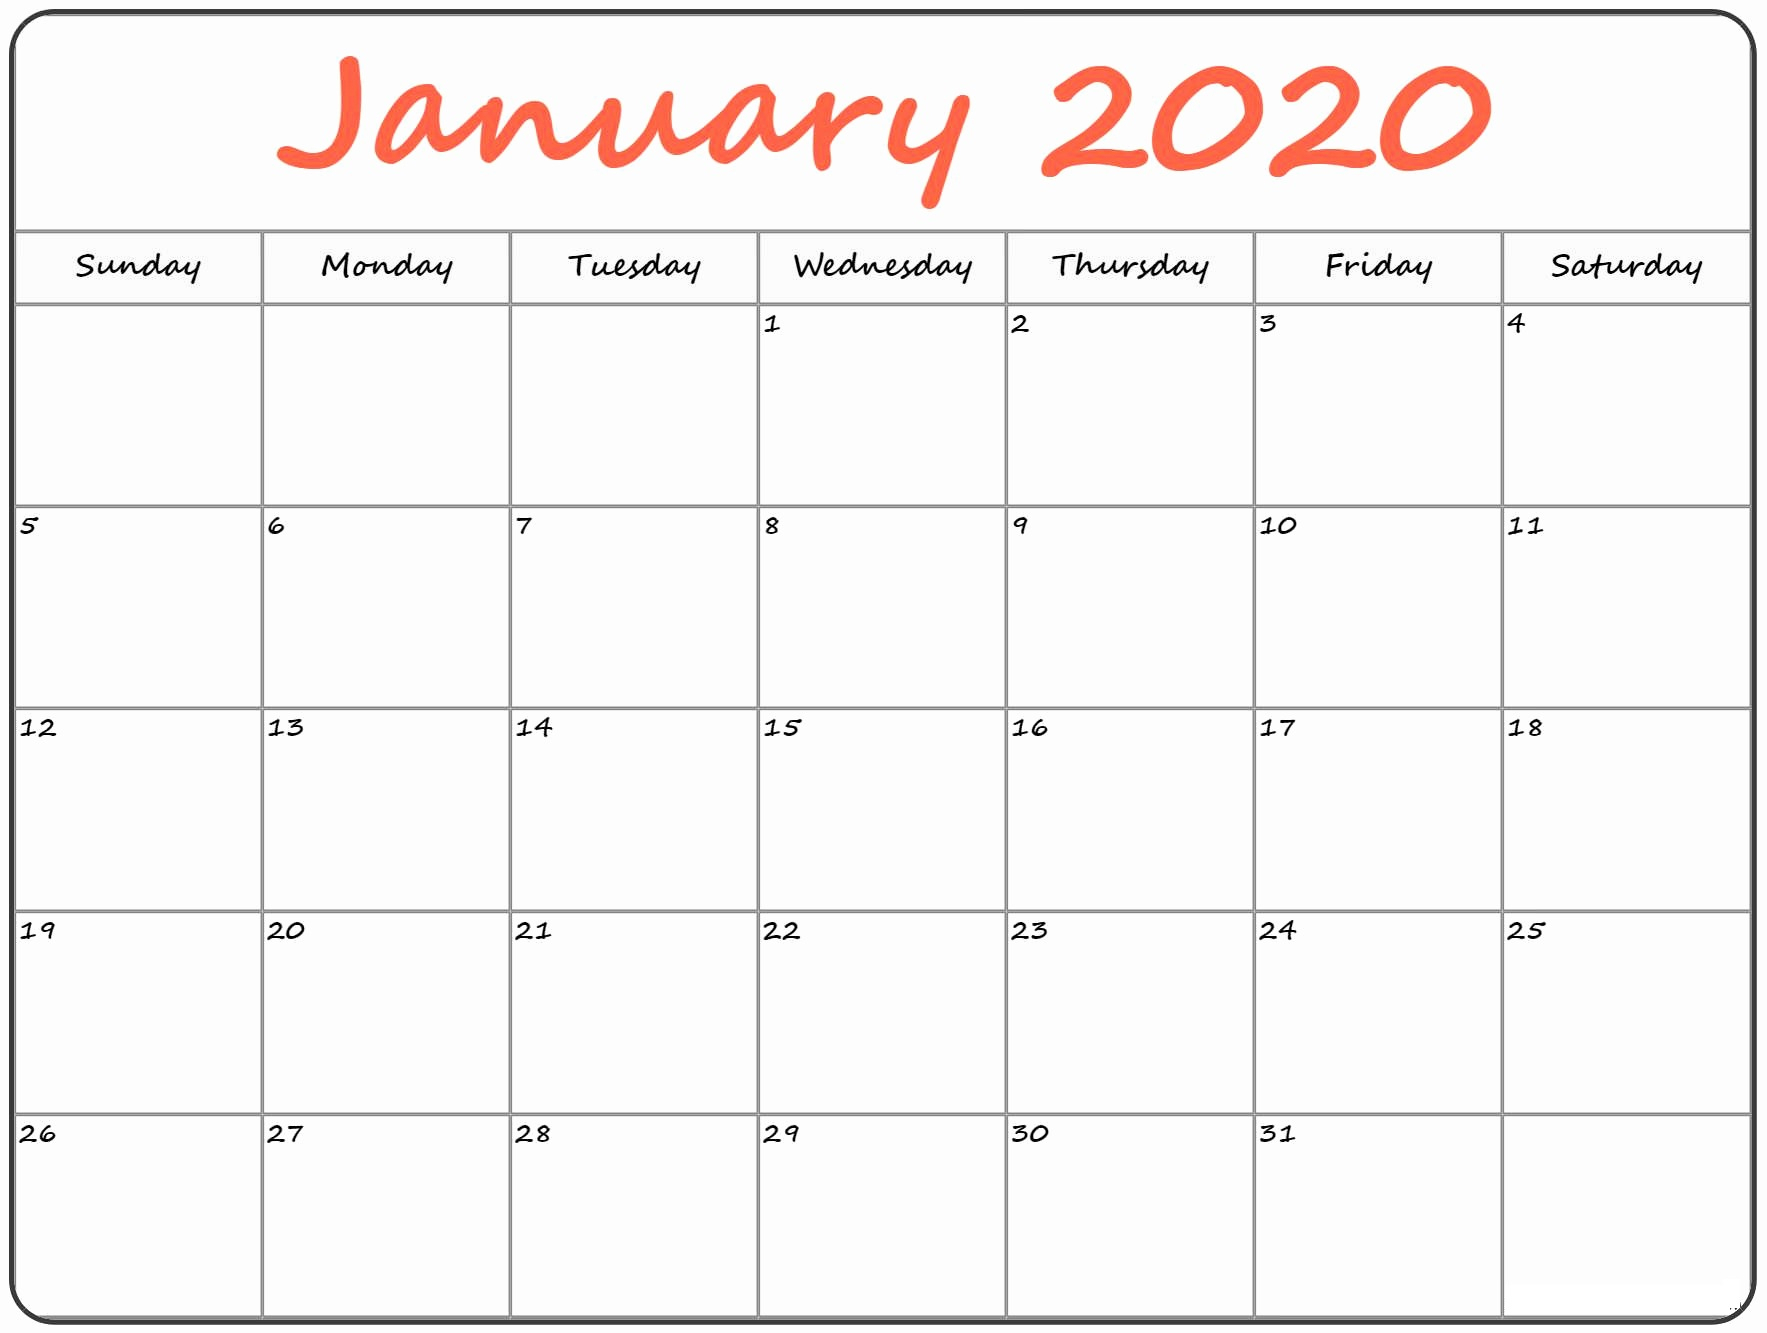 Cute January 2020 Calendar For Classroom Management | Free